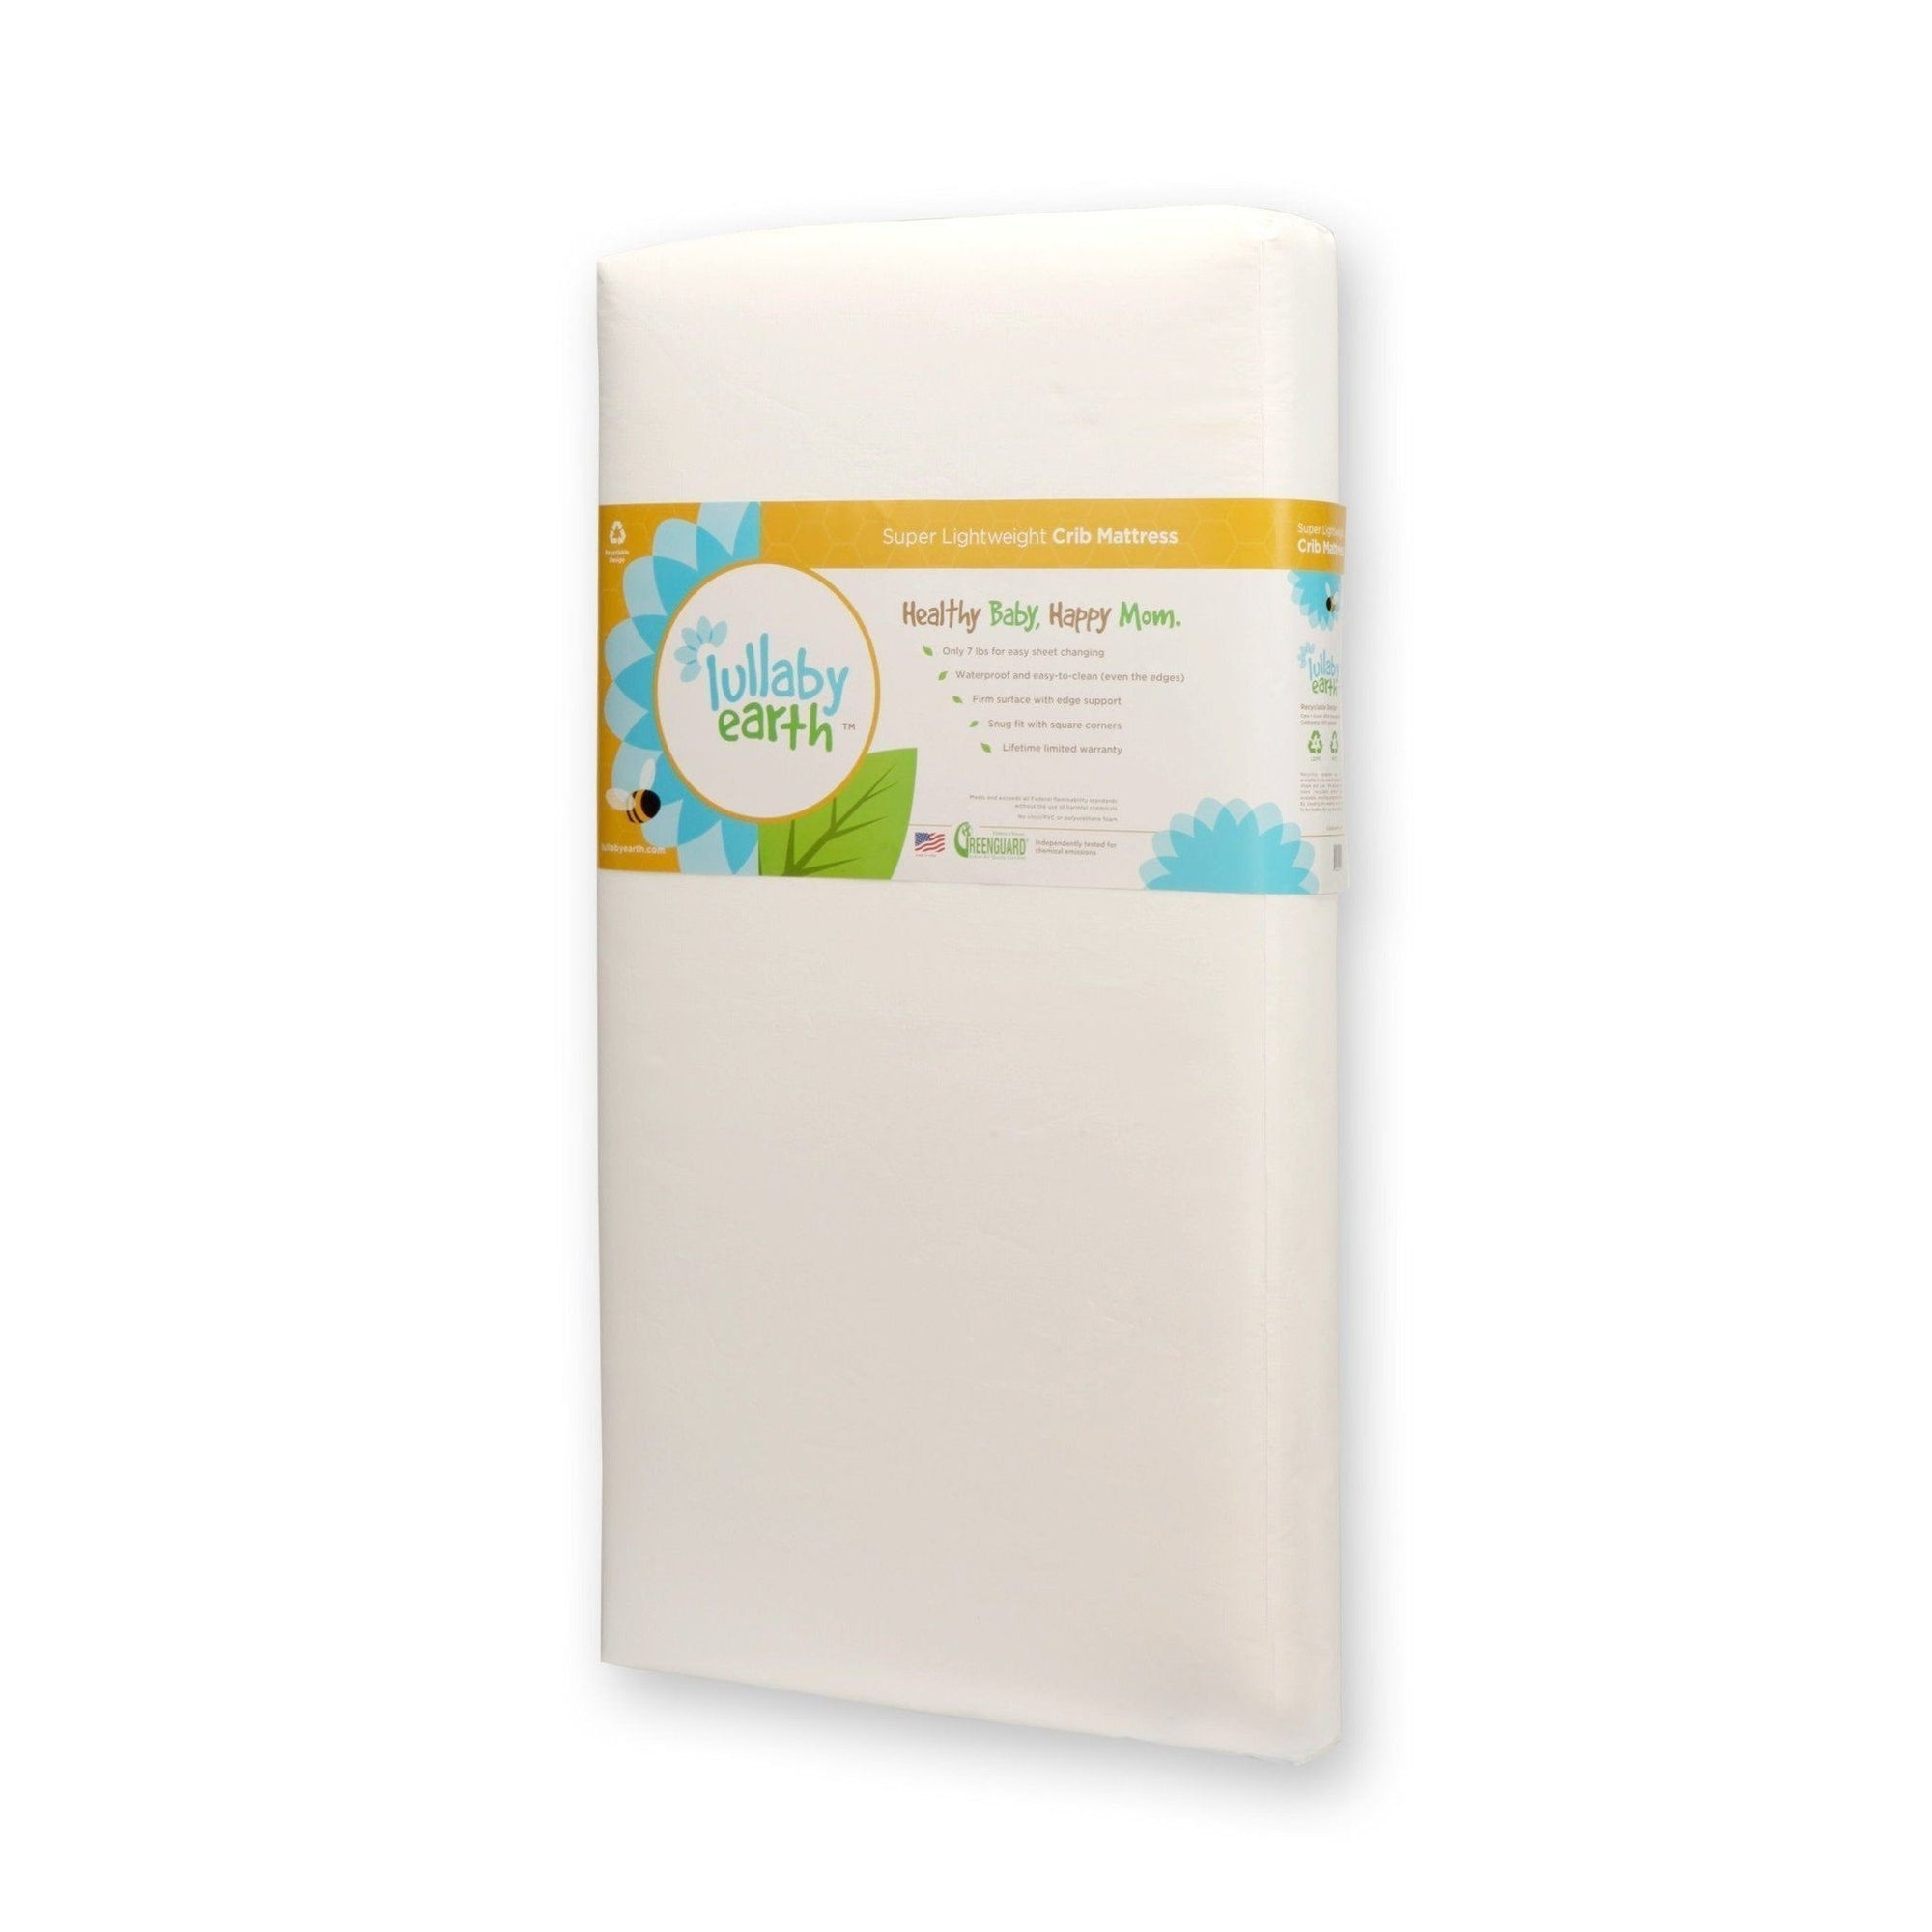 Health Support Waterproof Crib Mattress-Crib Mattress-Default-Jack and Jill Boutique